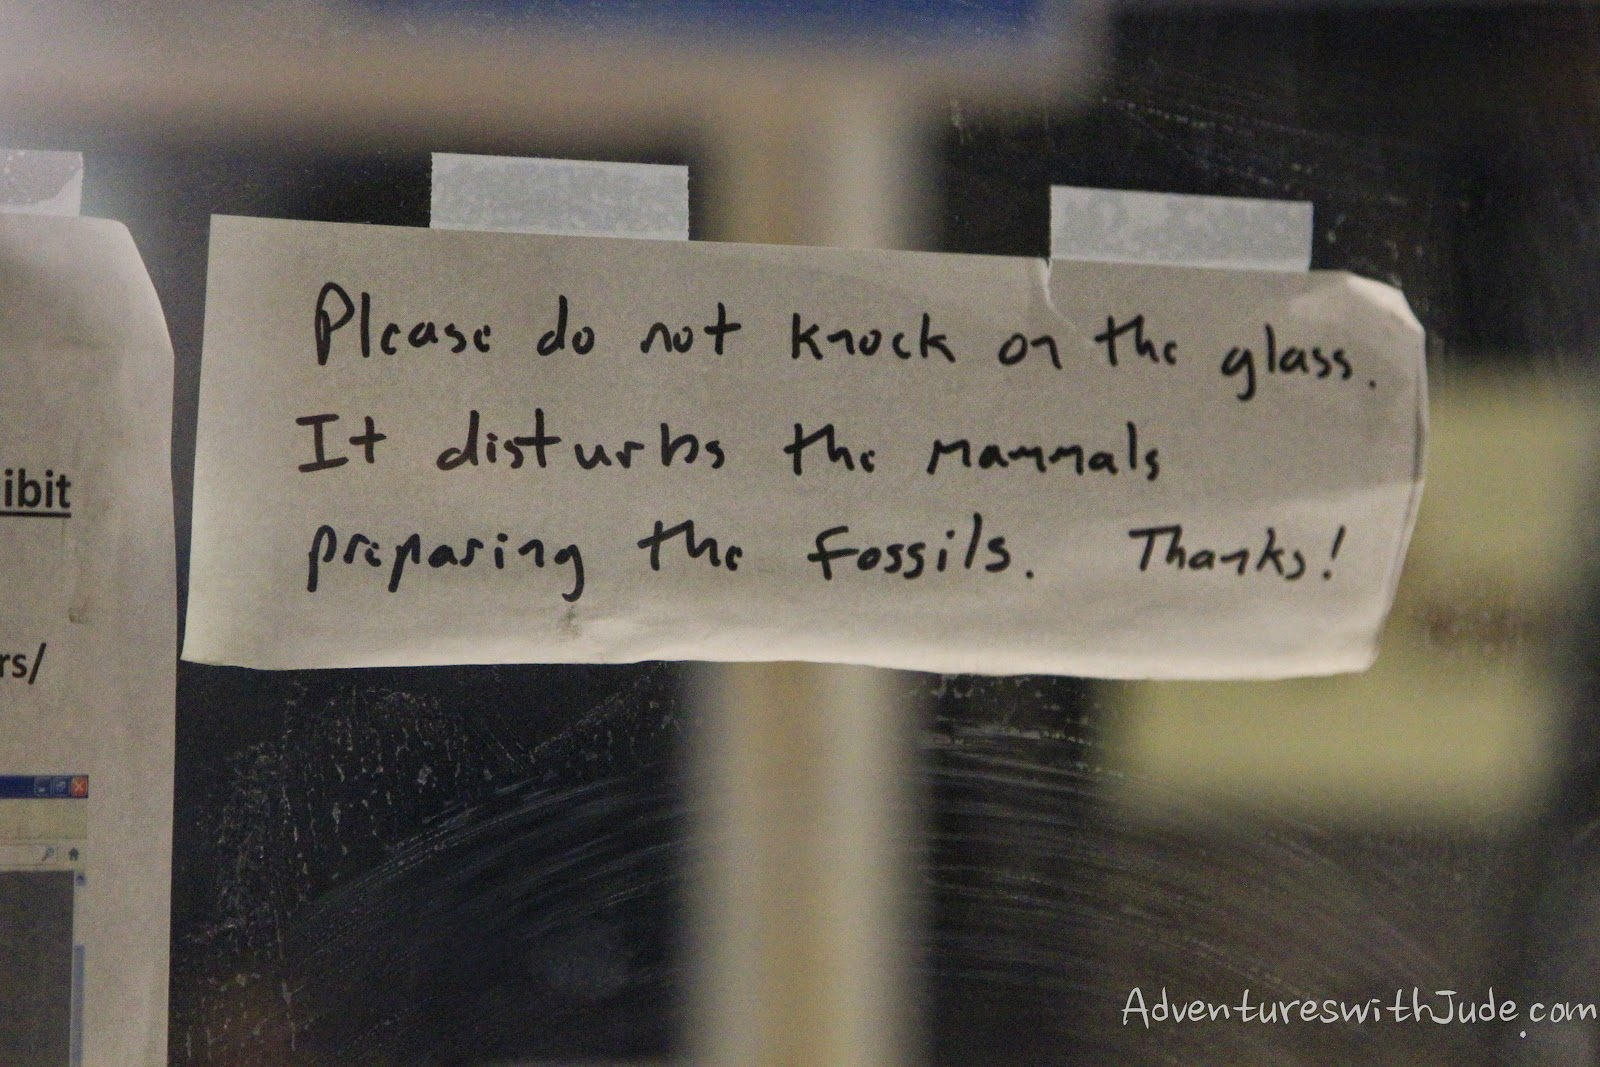 Paleontologists with a sense of humor.